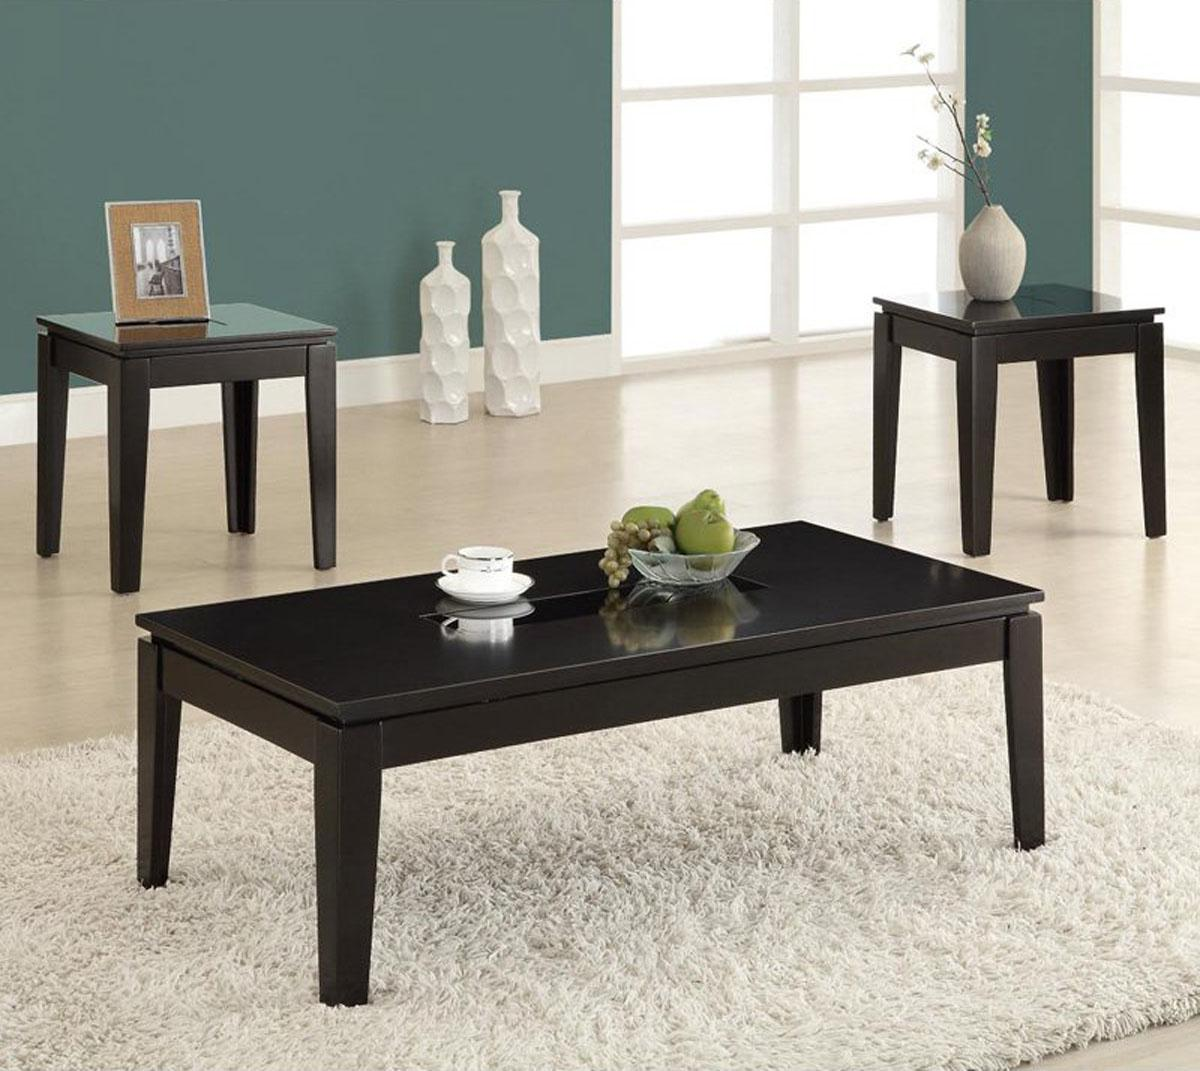 Coffee End Table Sets Sale: Black Coffee And End Table Sets Furniture